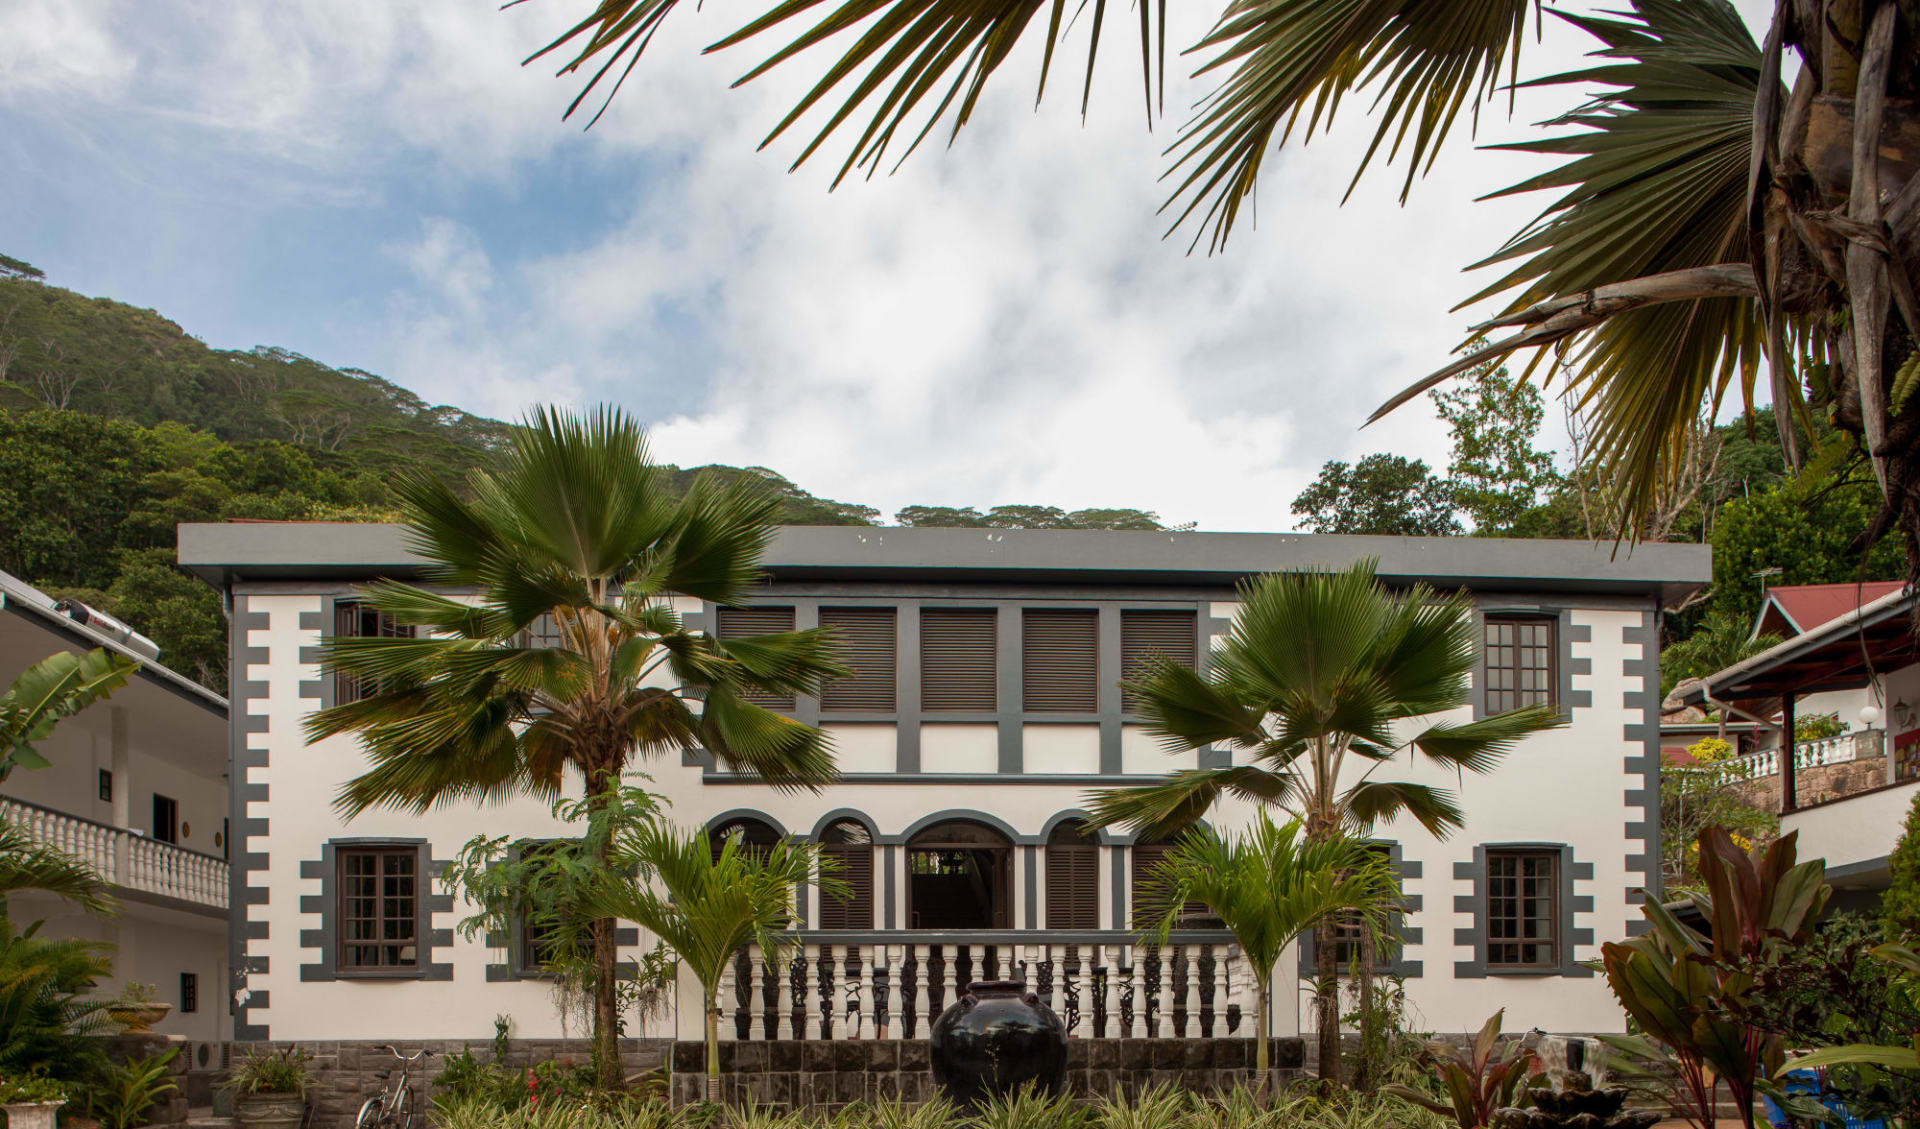 Chateau St. Cloud in La Digue: